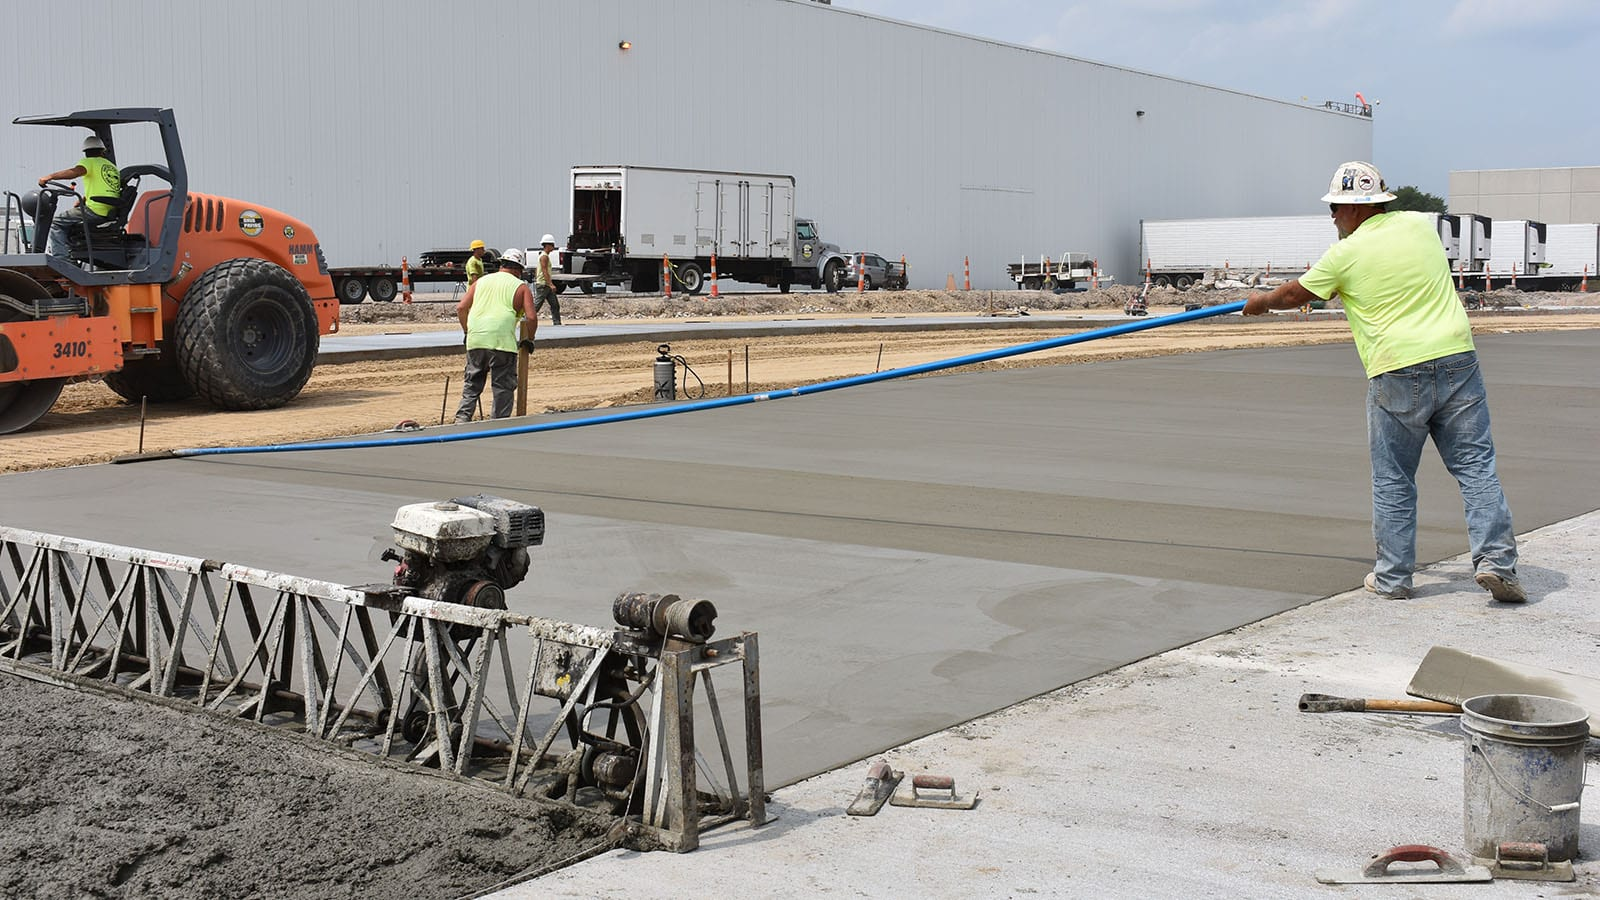 Our paving crew working on Nestle's expanded parking lot in Streetsboro, OH